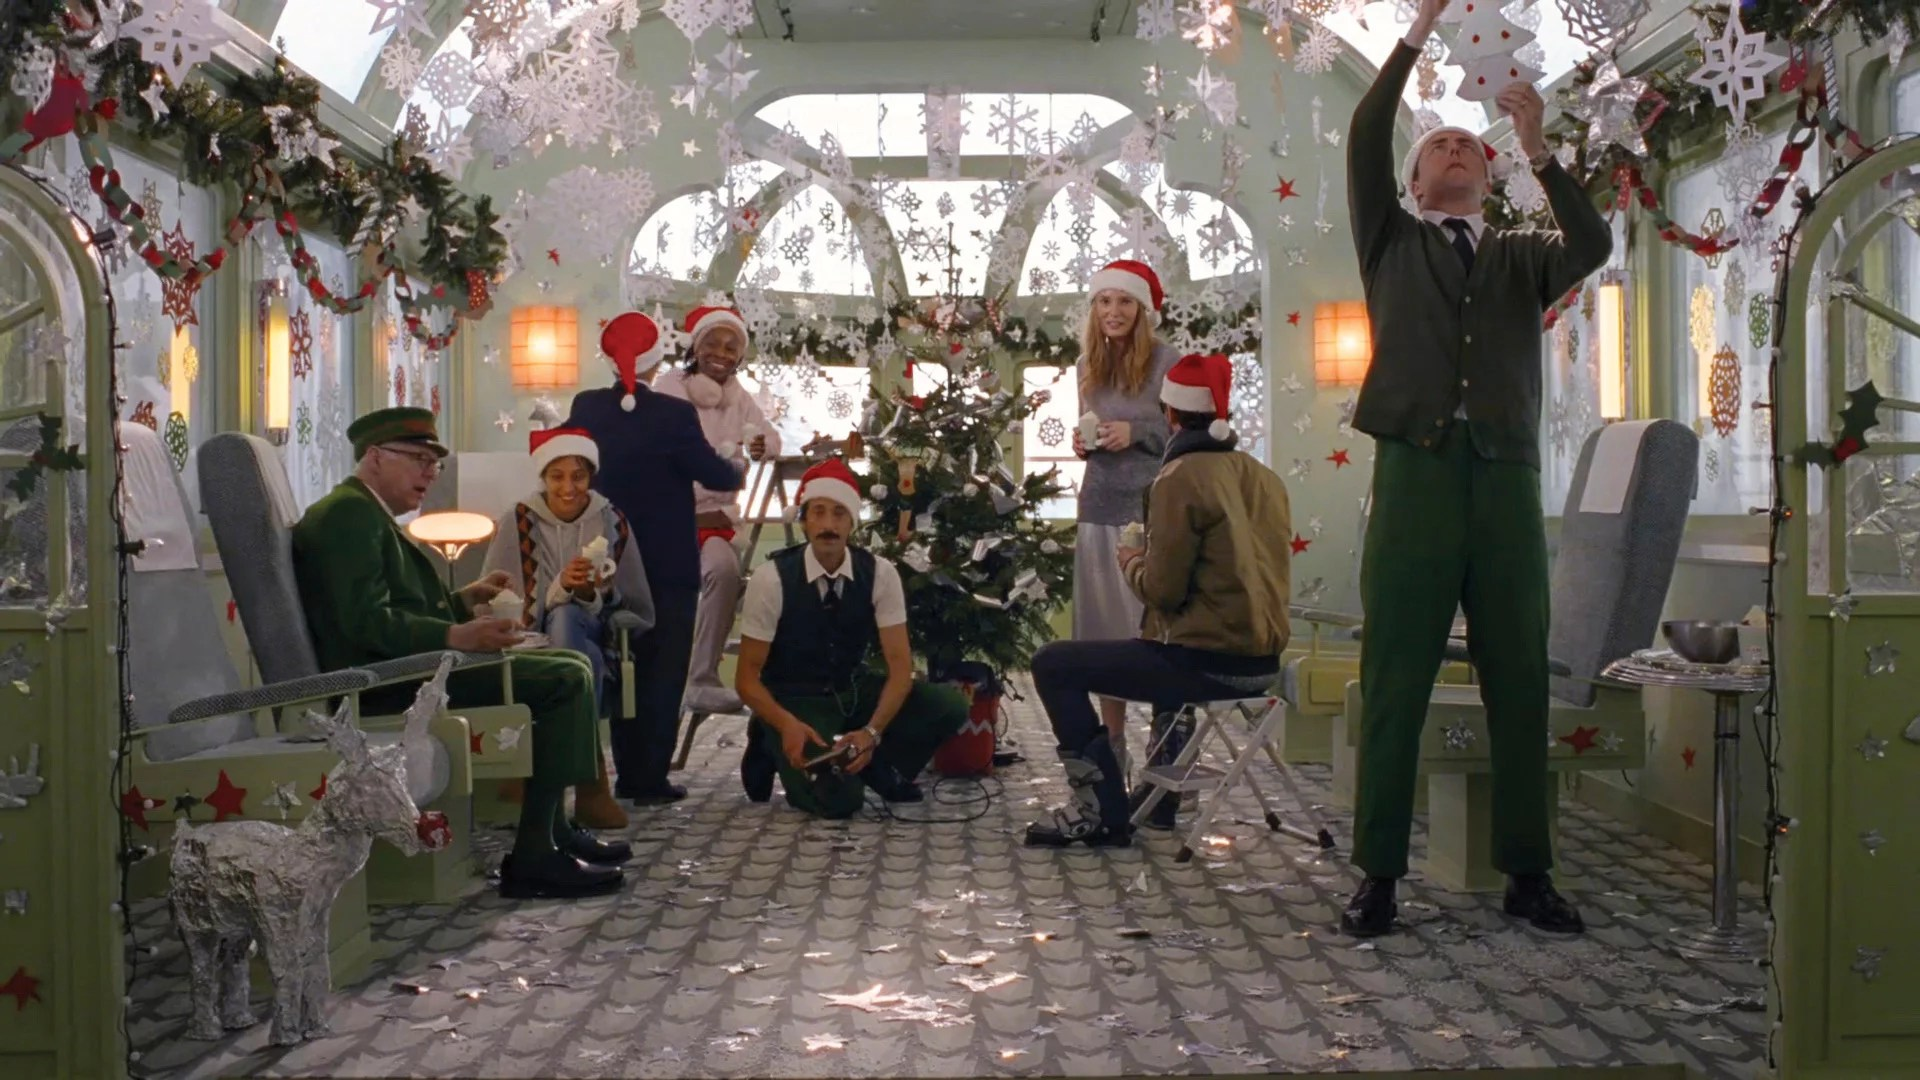 Best Christmas Commercials 10 Best Christmas Commercials To Warm Your Heart Popsugar